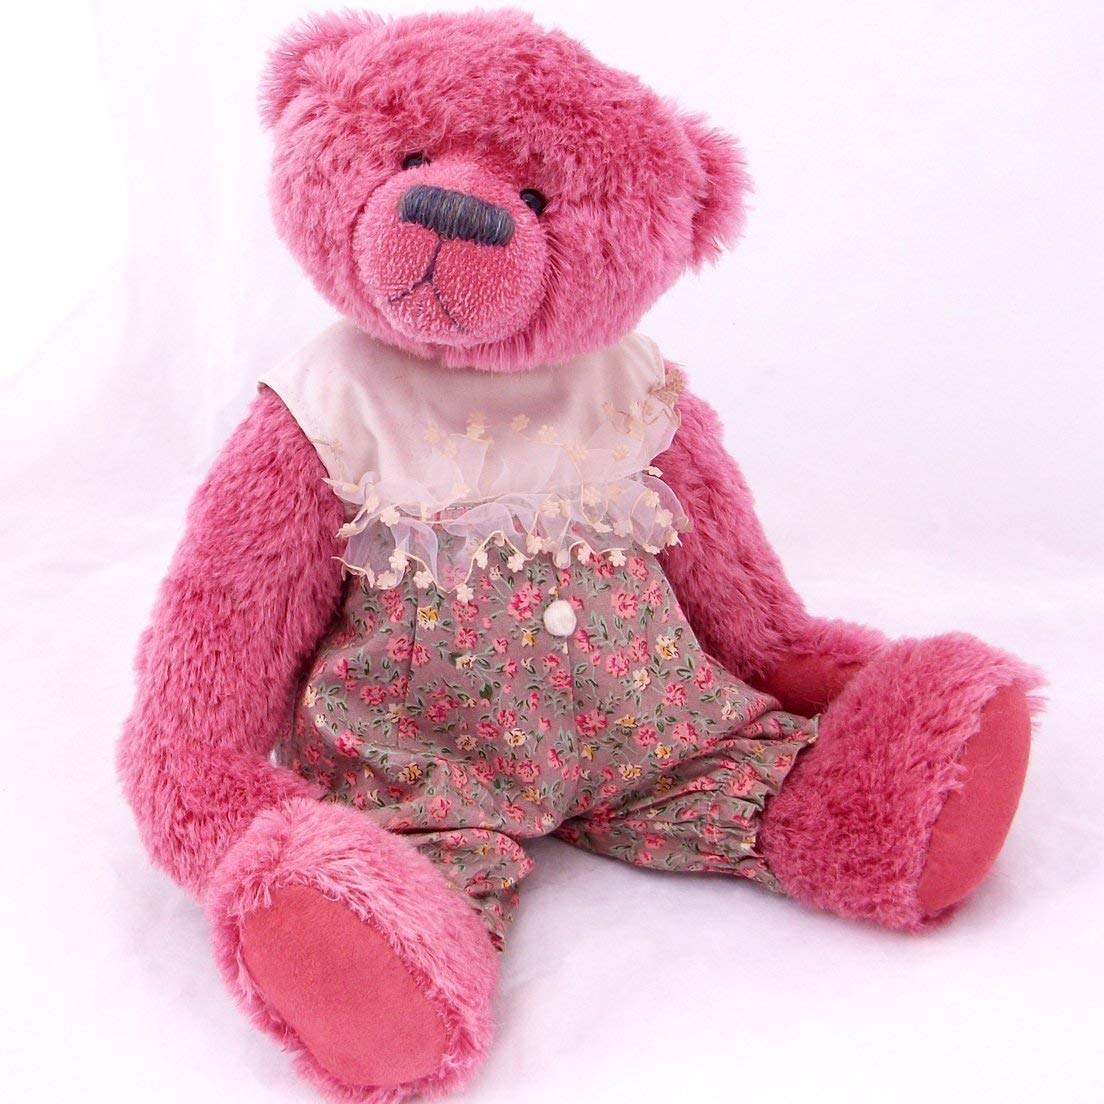 Teddy Bear Pink Steiff Schulte Mohair Artist Collectable OOAK 15 inches Cherry Blossom